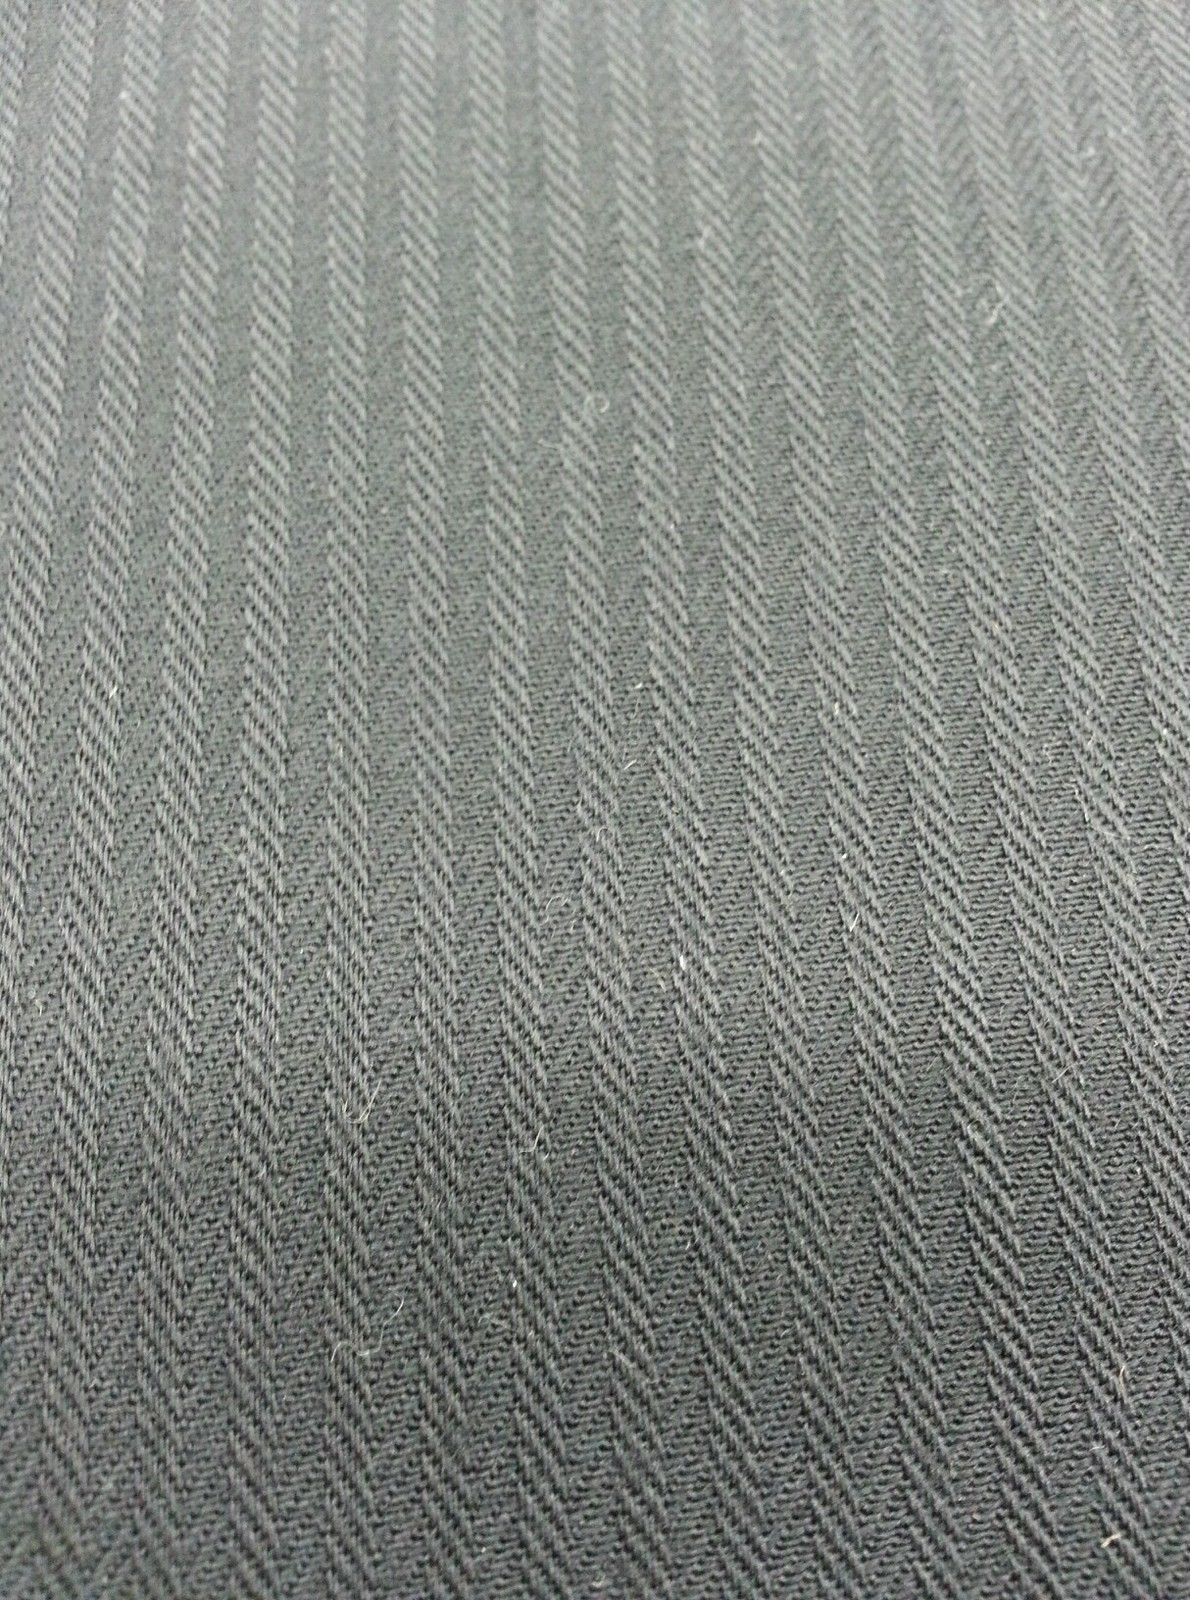 Navy Blue HeringBone Italian All Wool Worsted suiting fabric 4.1 Yards-MSRP $495